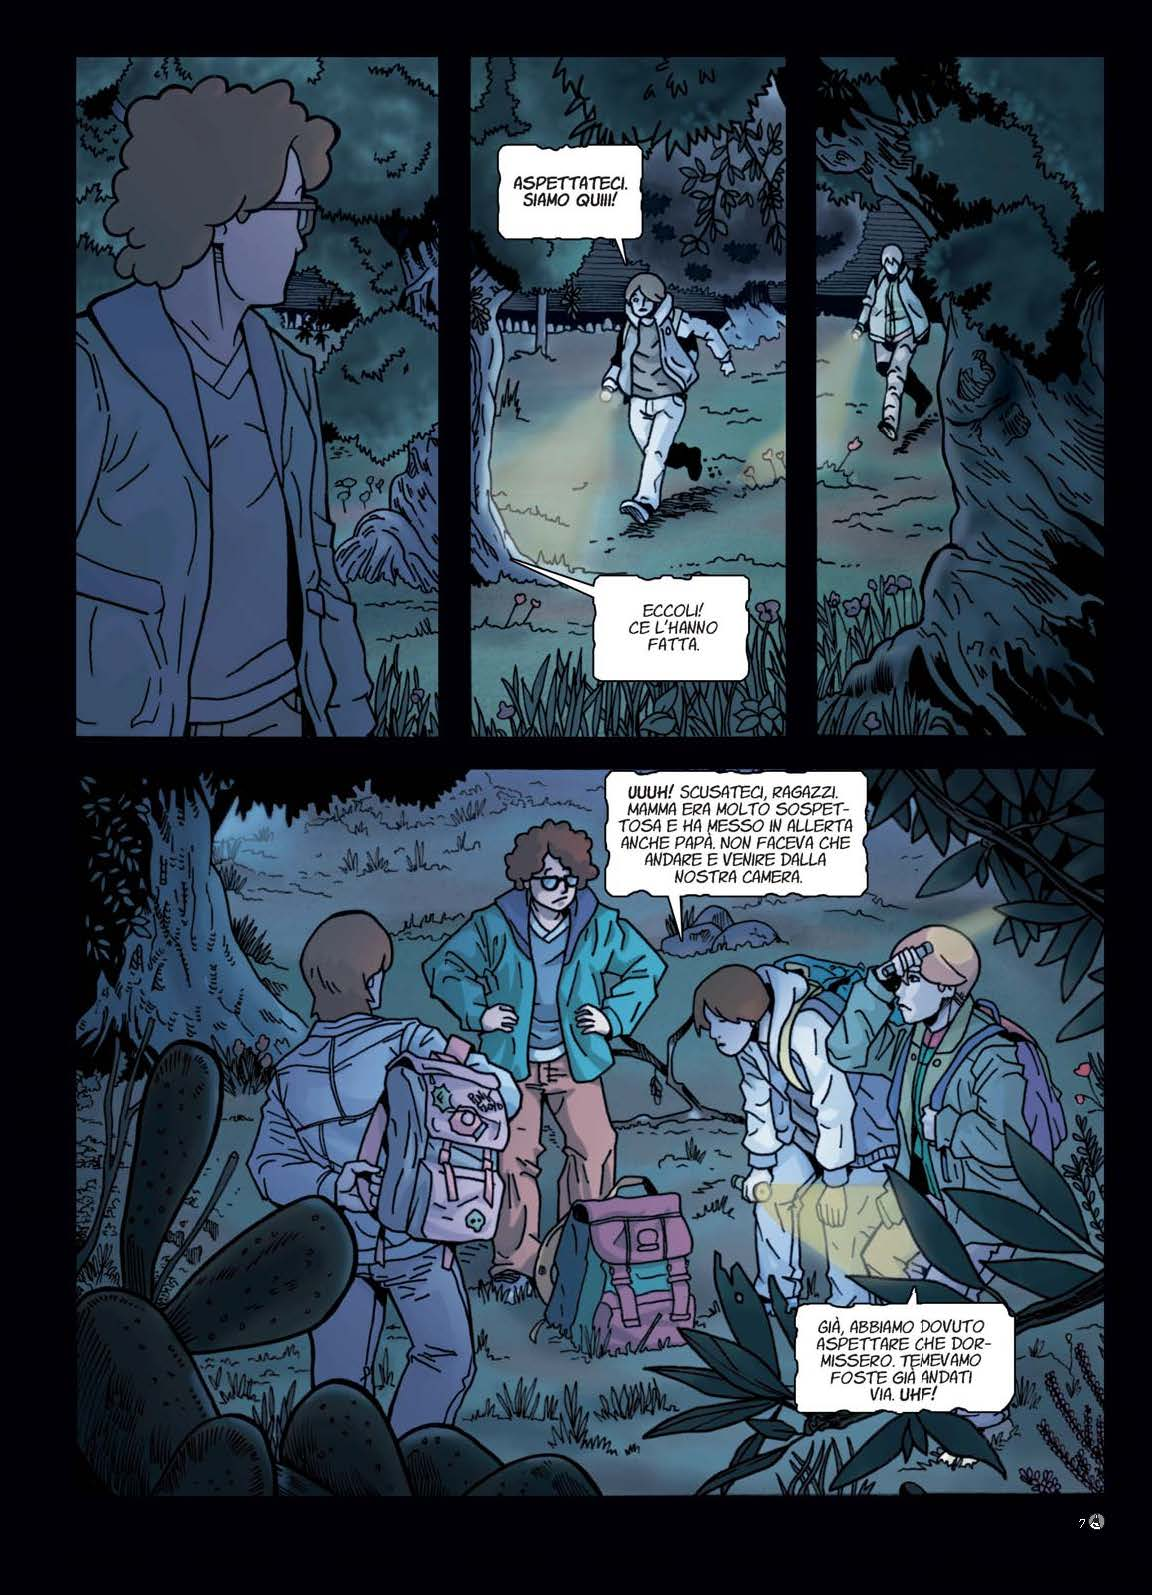 Pages-from-sulla_collina_completo_LR_Page_3_Anteprime